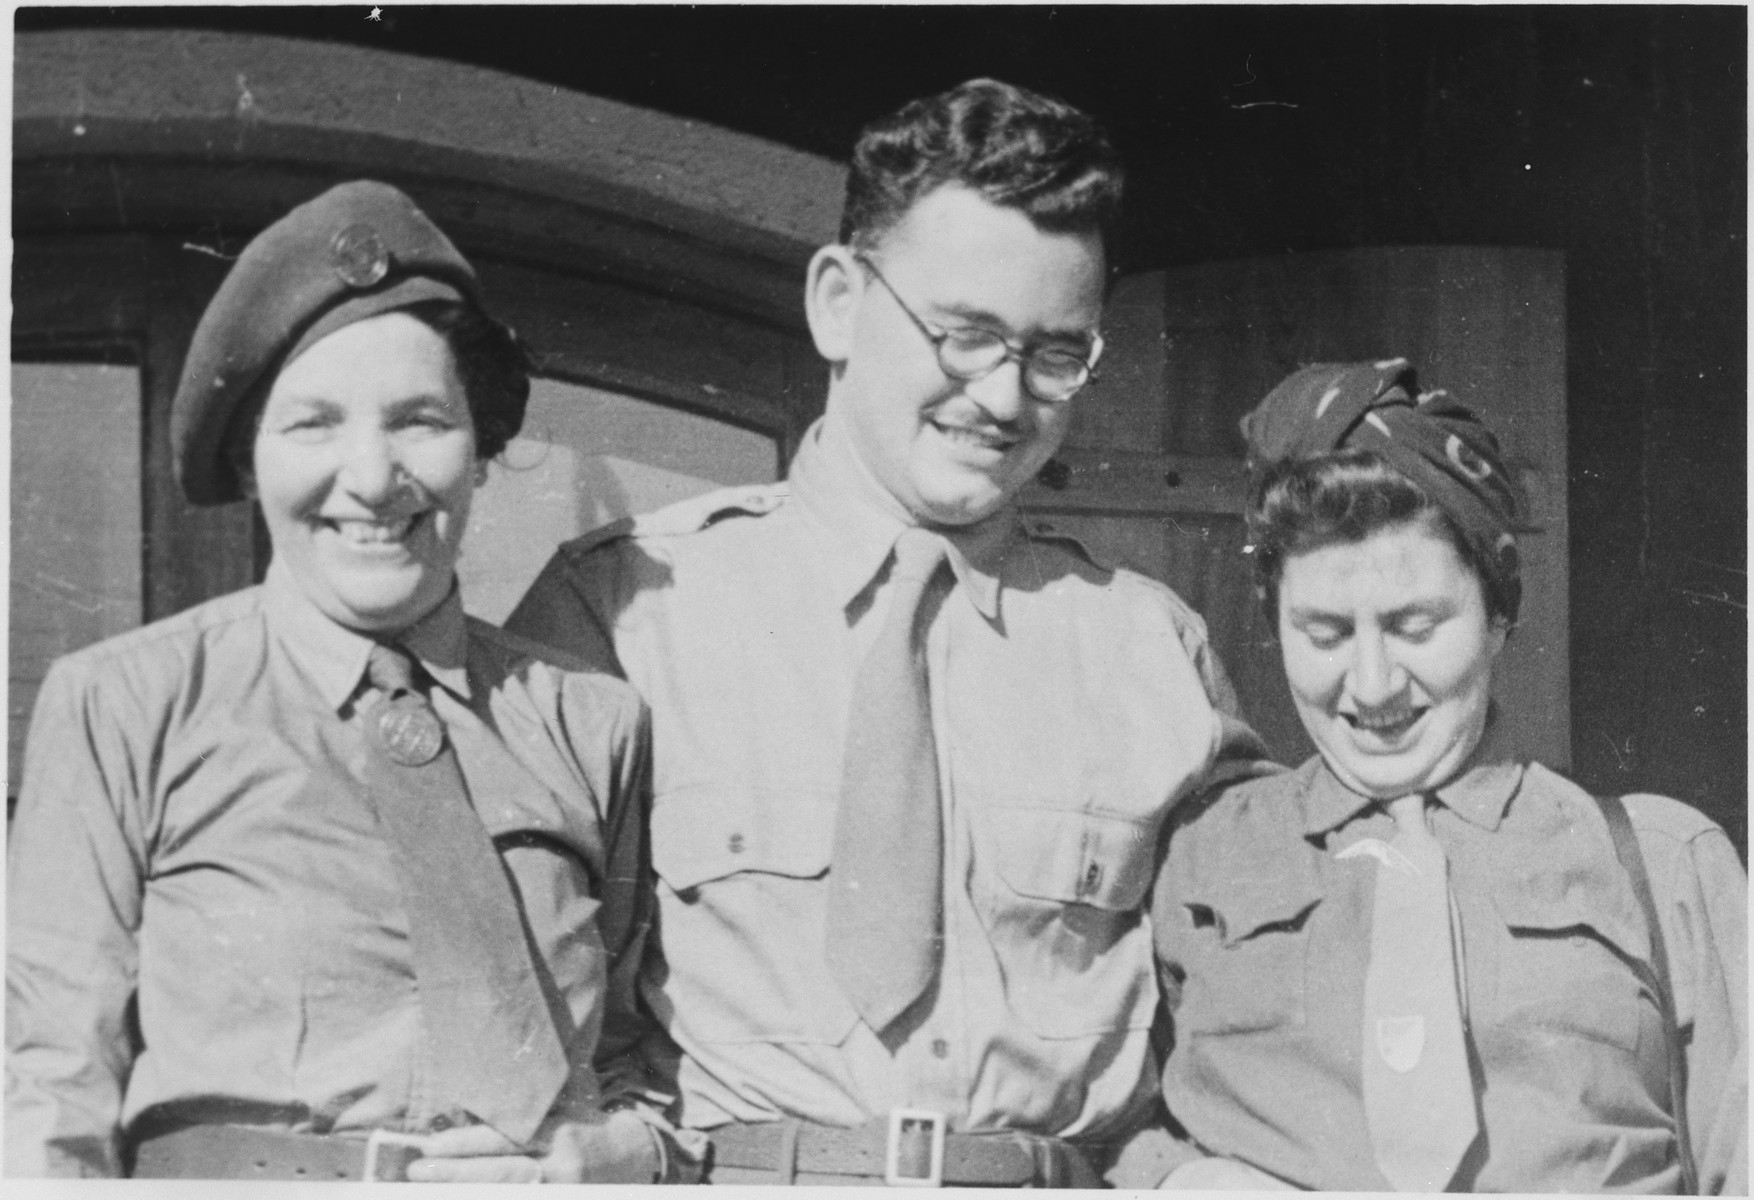 Close up portrait of three UNRRA workers in the Windsheim displaced persons' camp.  Stanley Abrmowitz is pictured in the center.